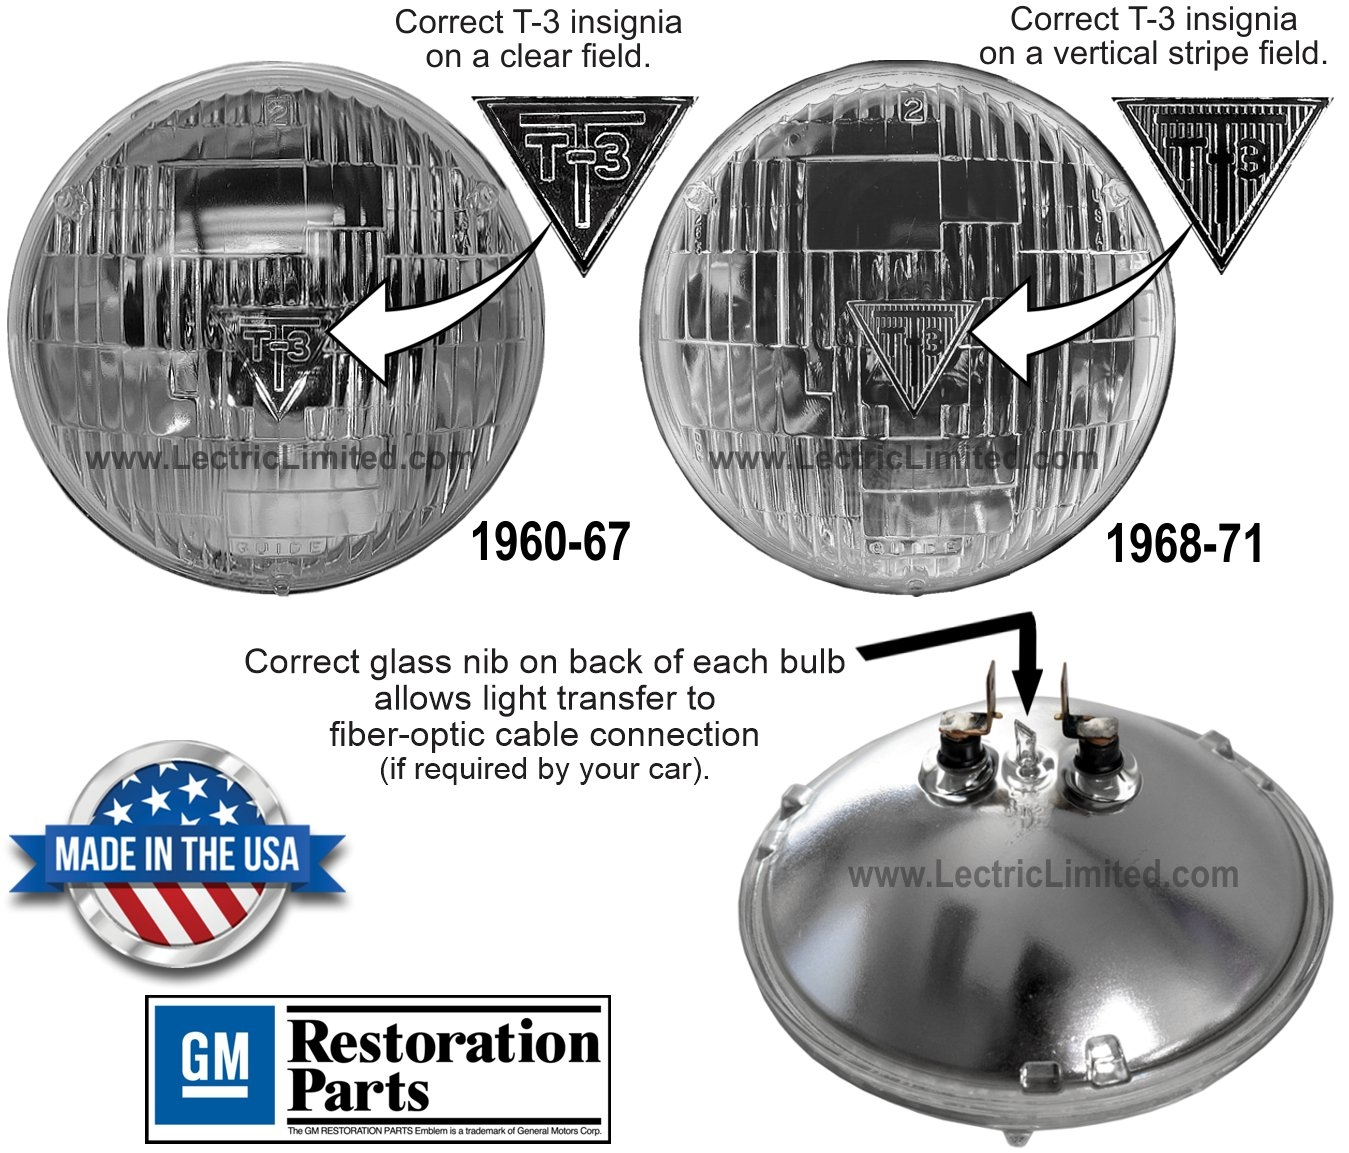 T3 T-3 Guide sealed beam headlight bulbs